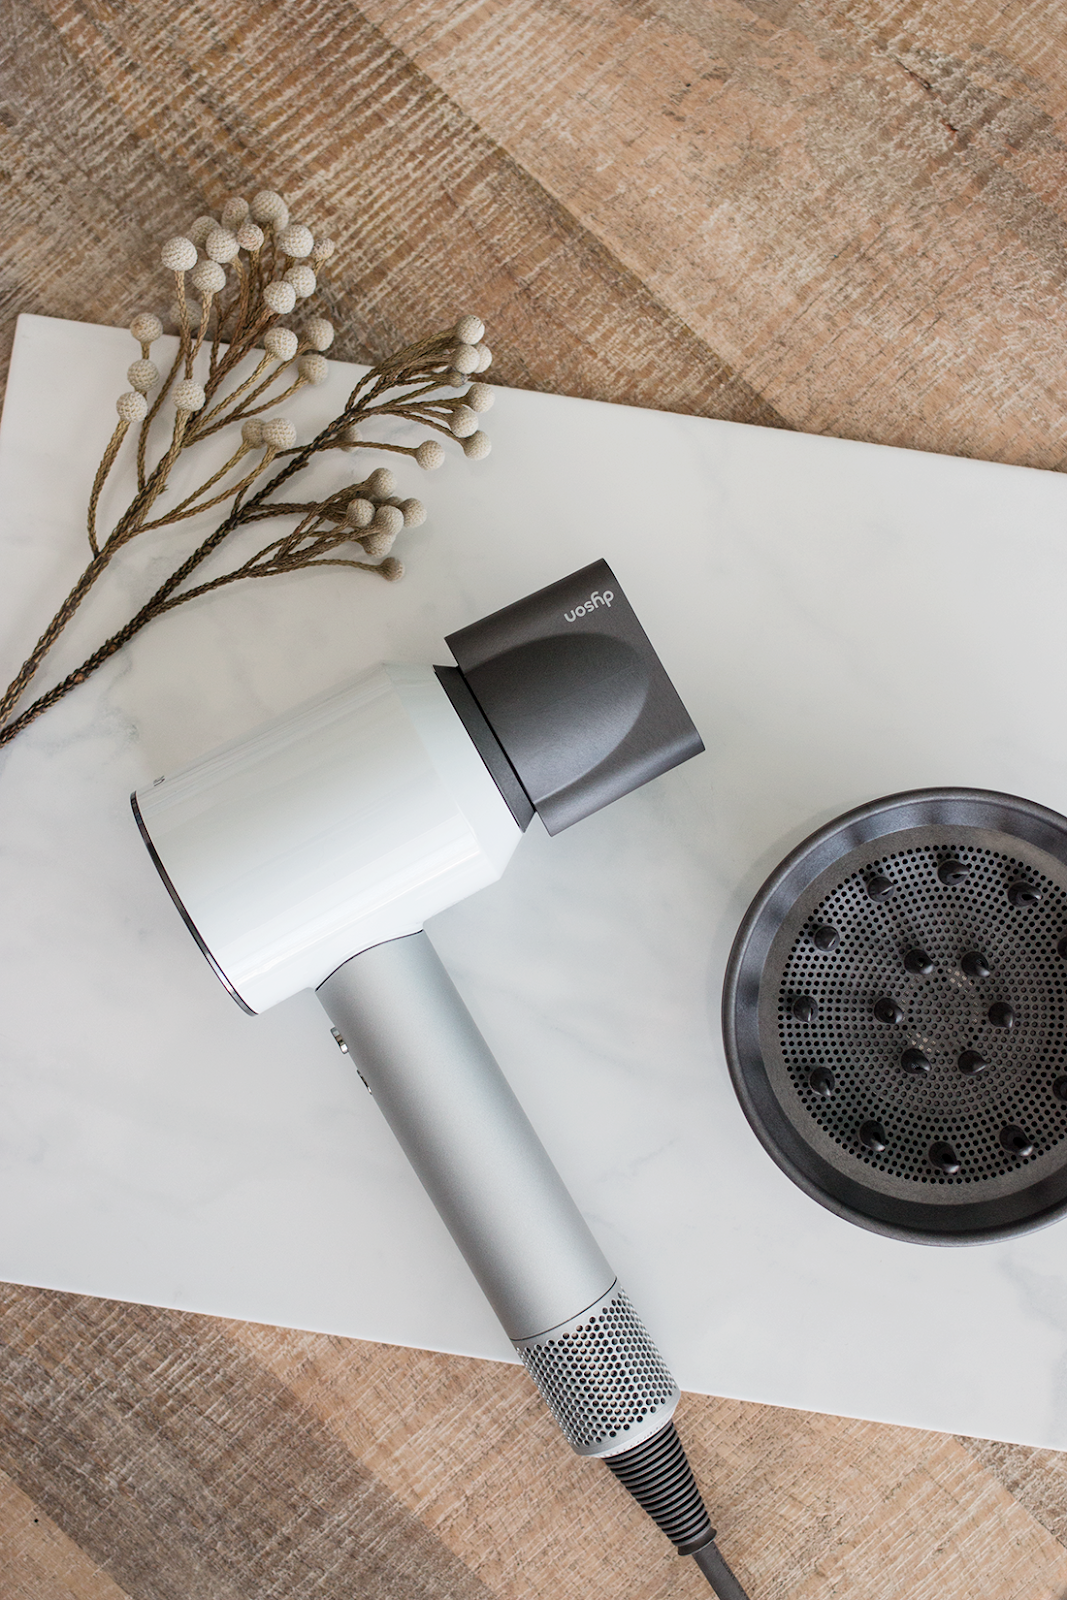 Dyson Released a Hair Dryer (And I Couldn't Love a Human Baby As Much As I Love It)